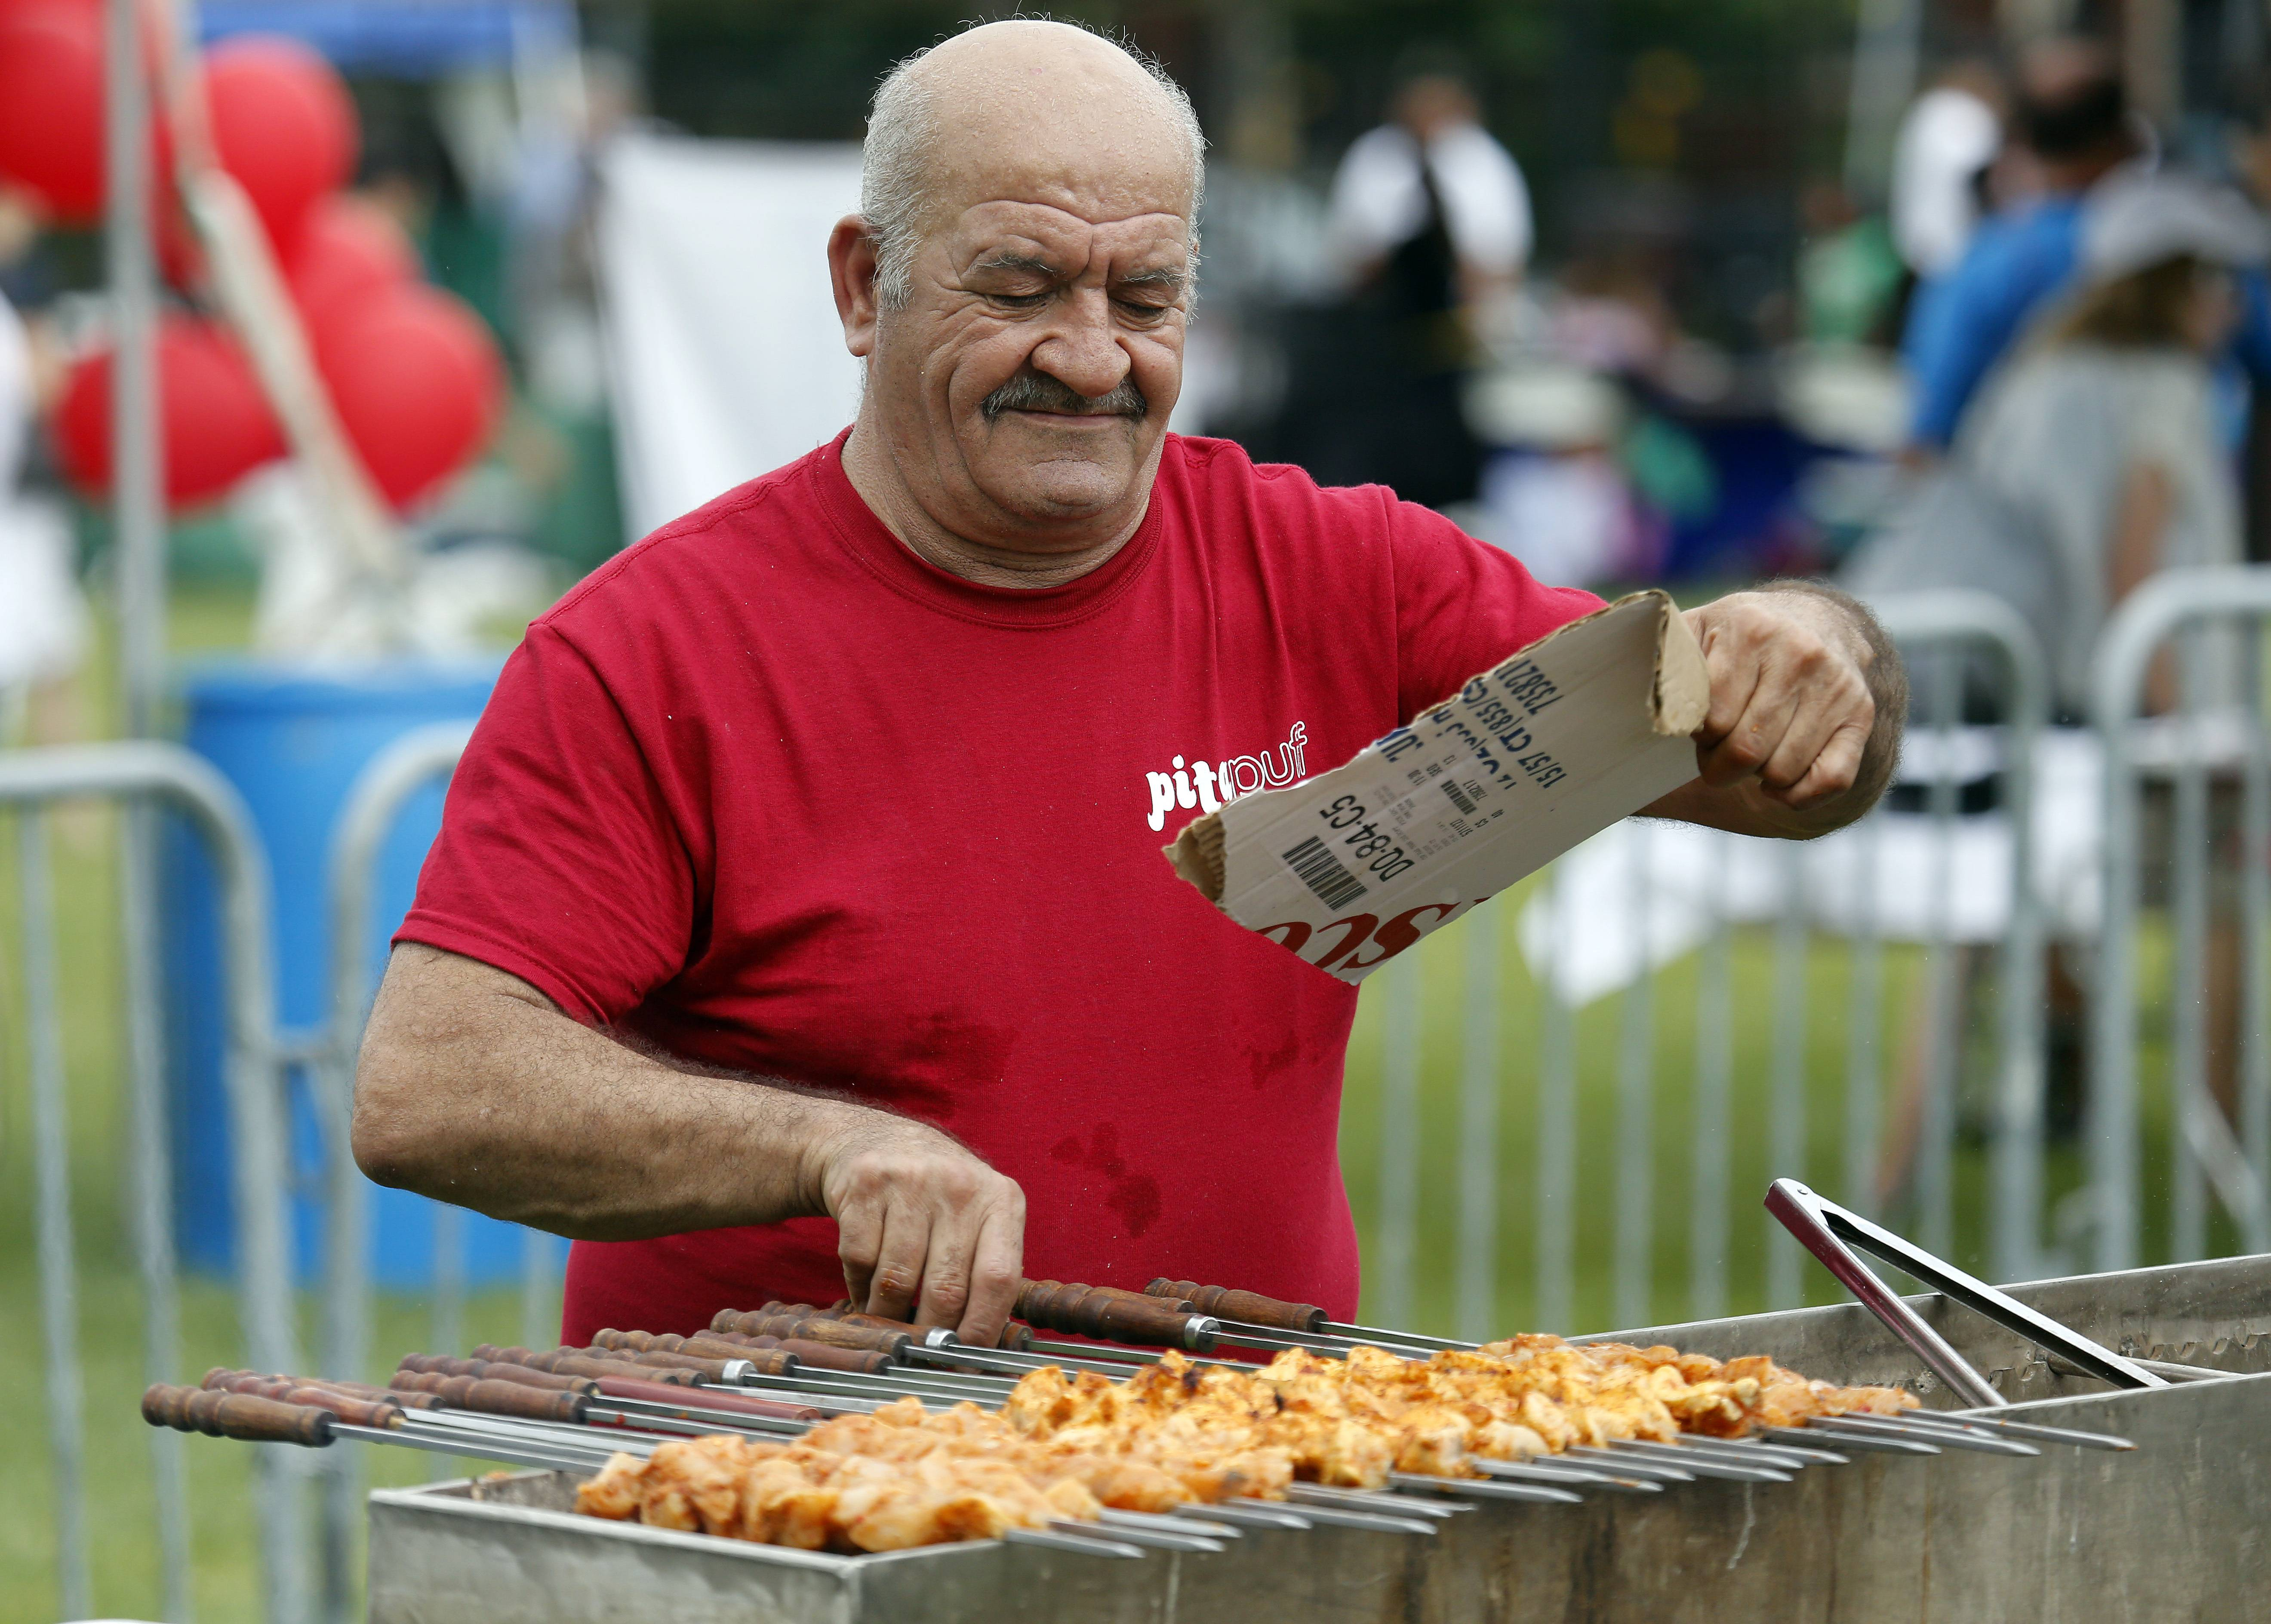 Joseph Shimon of Pita Puff Mediterranean Grill and Cafe worked the grill at last year's iFest at Festival Park in Elgin. The restaurant will be among 19 food vendors this year.